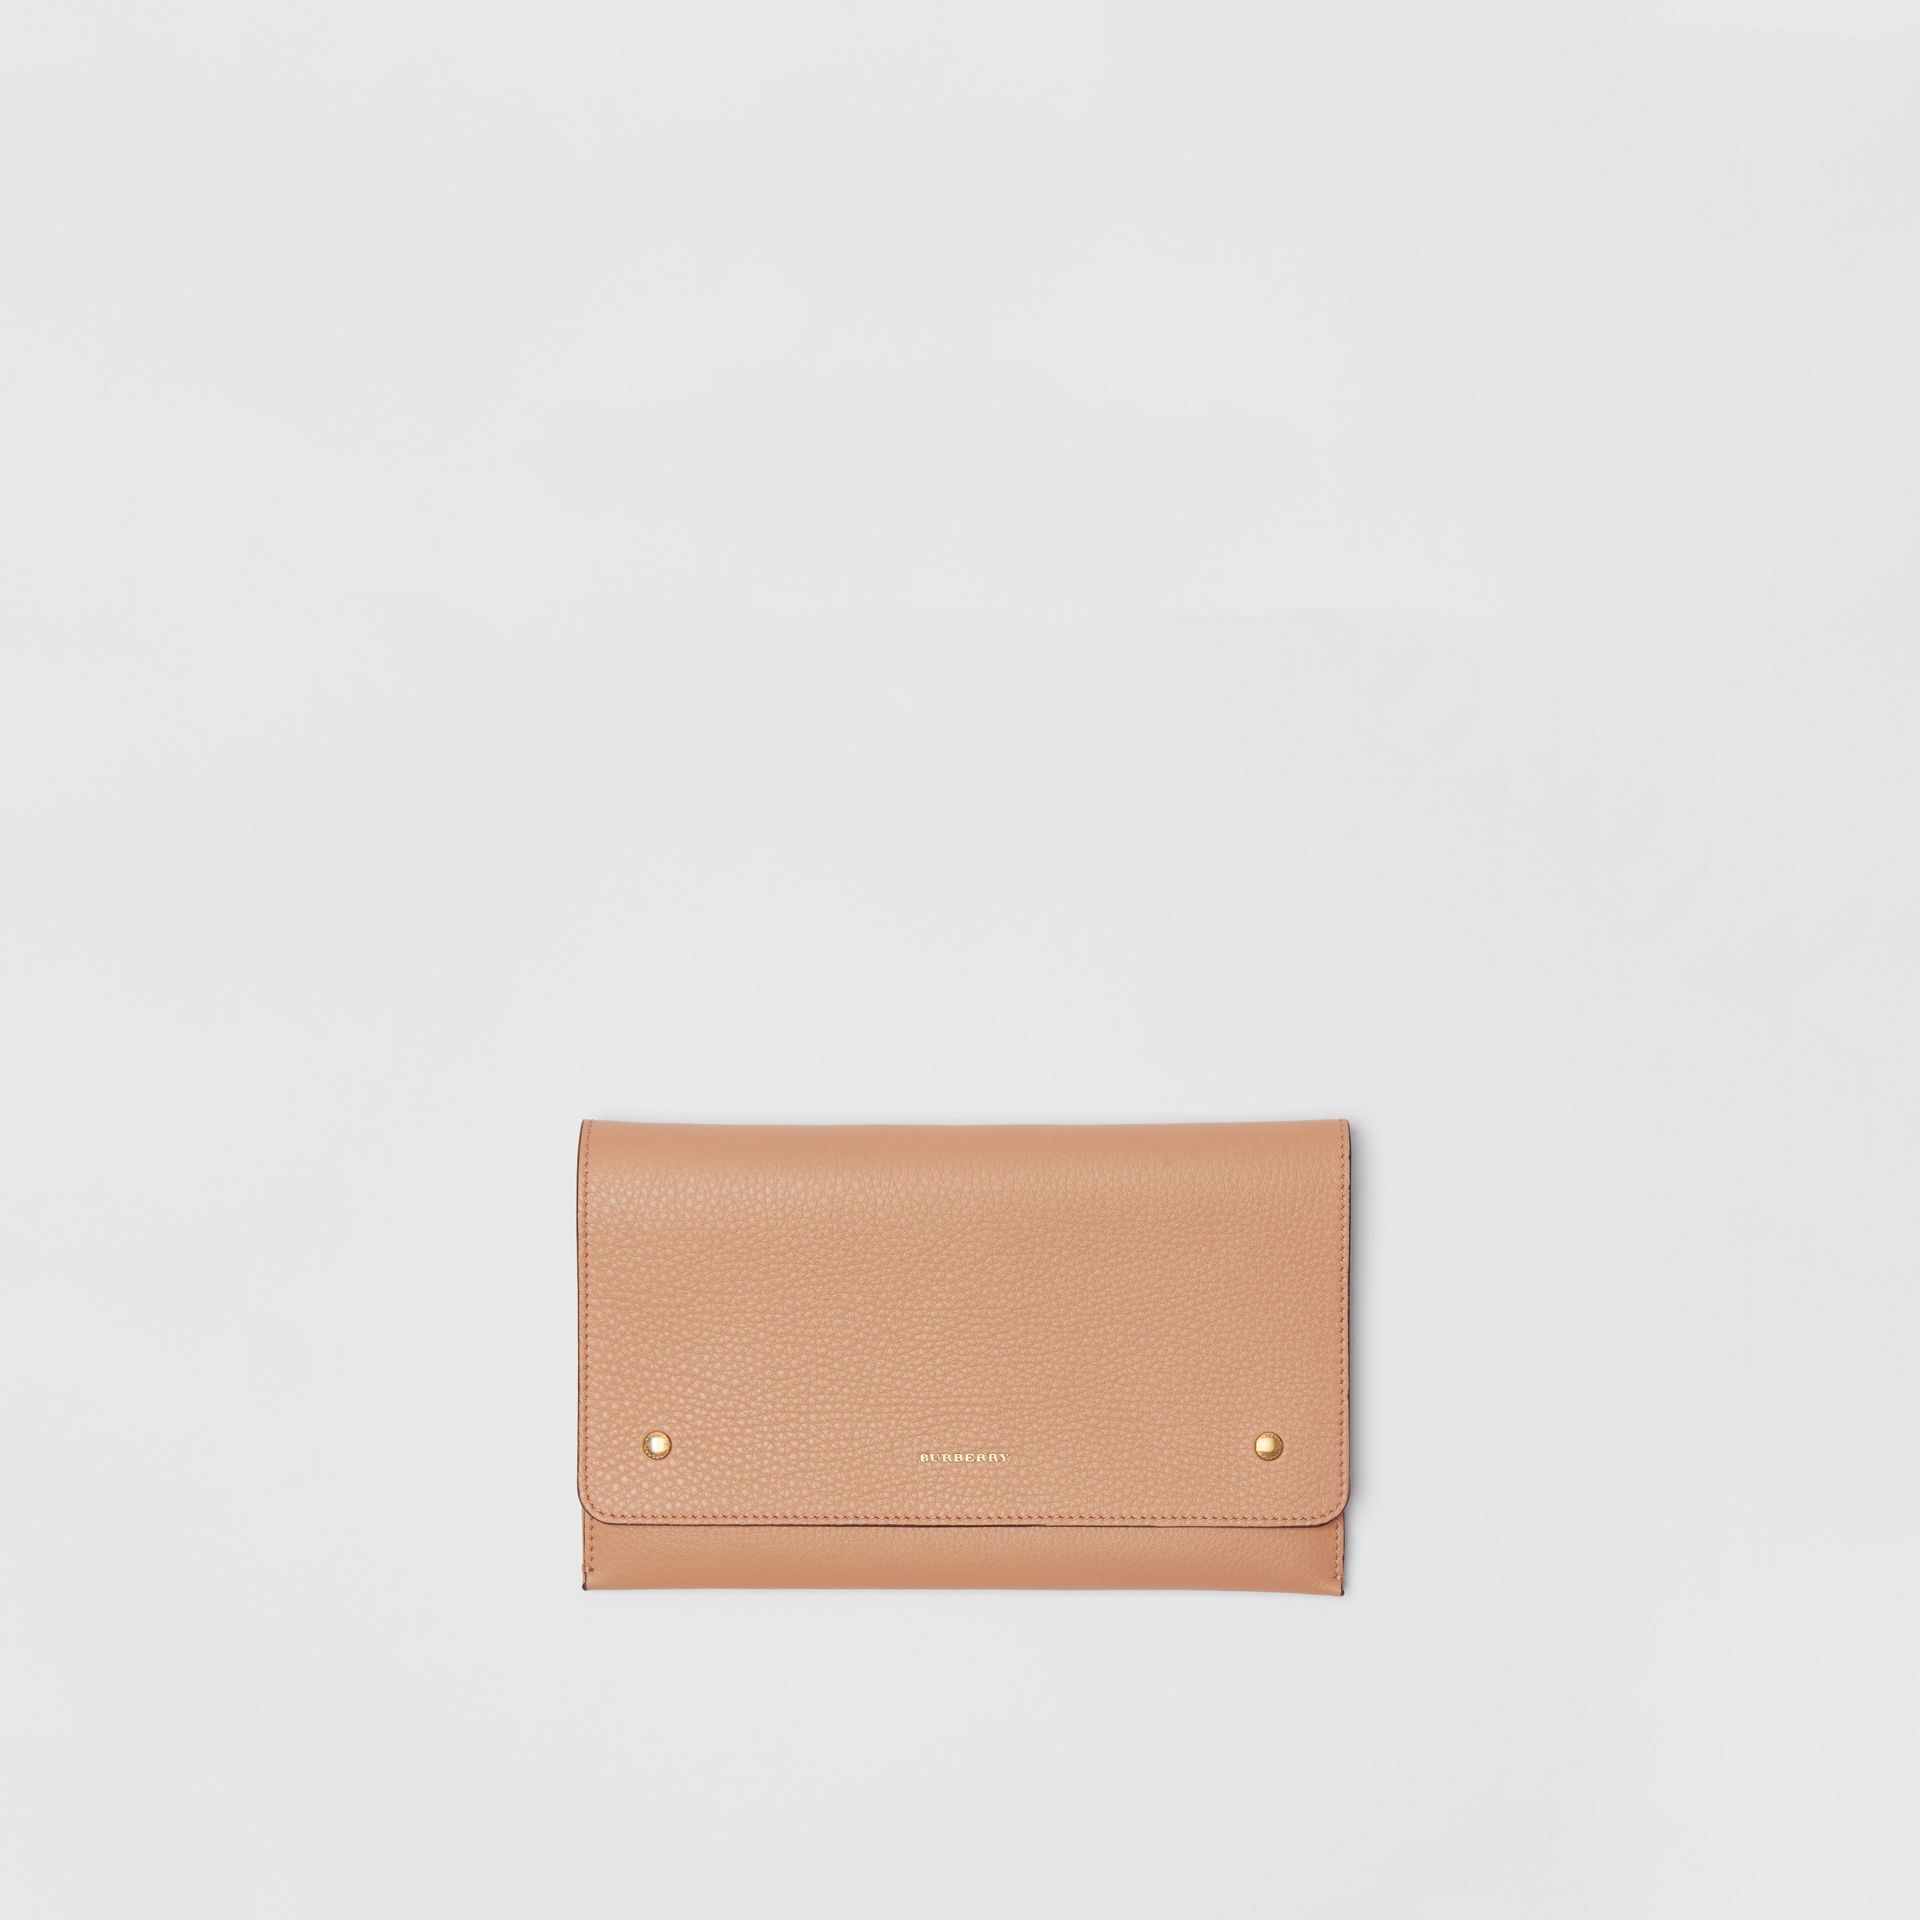 Two-tone Leather Wristlet Clutch in Light Camel - Women | Burberry Hong Kong - gallery image 0